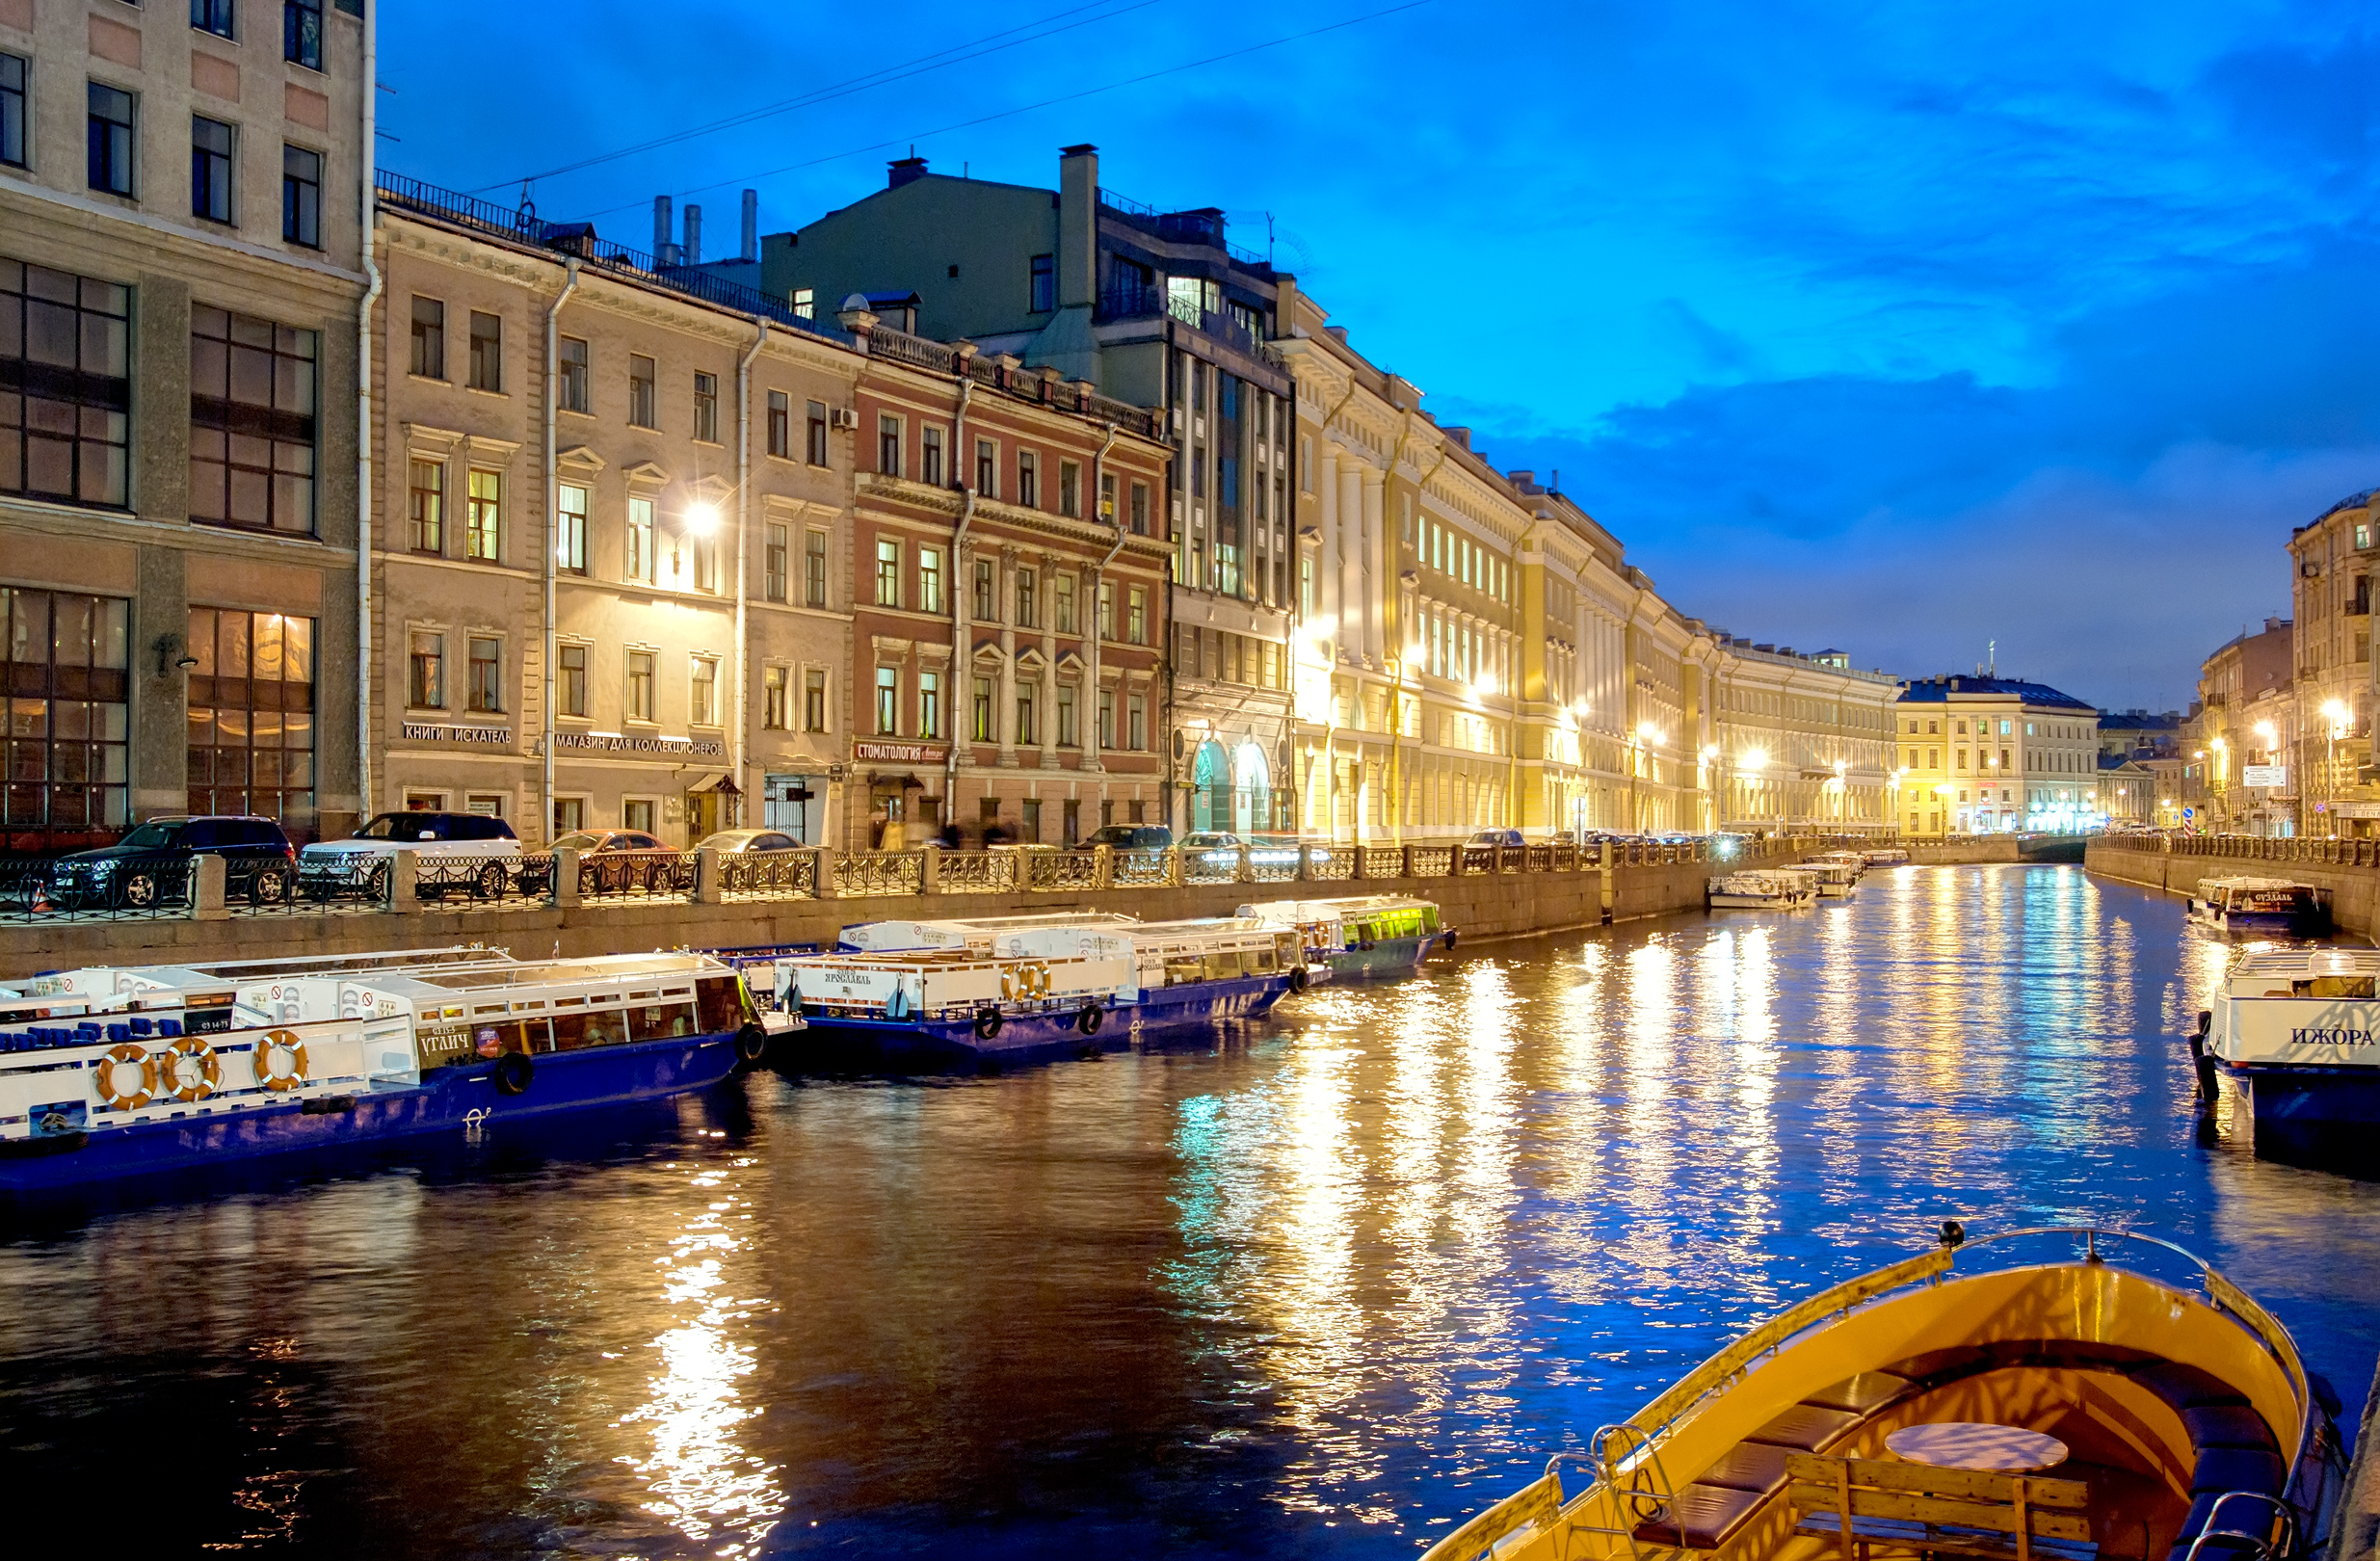 Witness the incredible and historic canal of St Petersburg